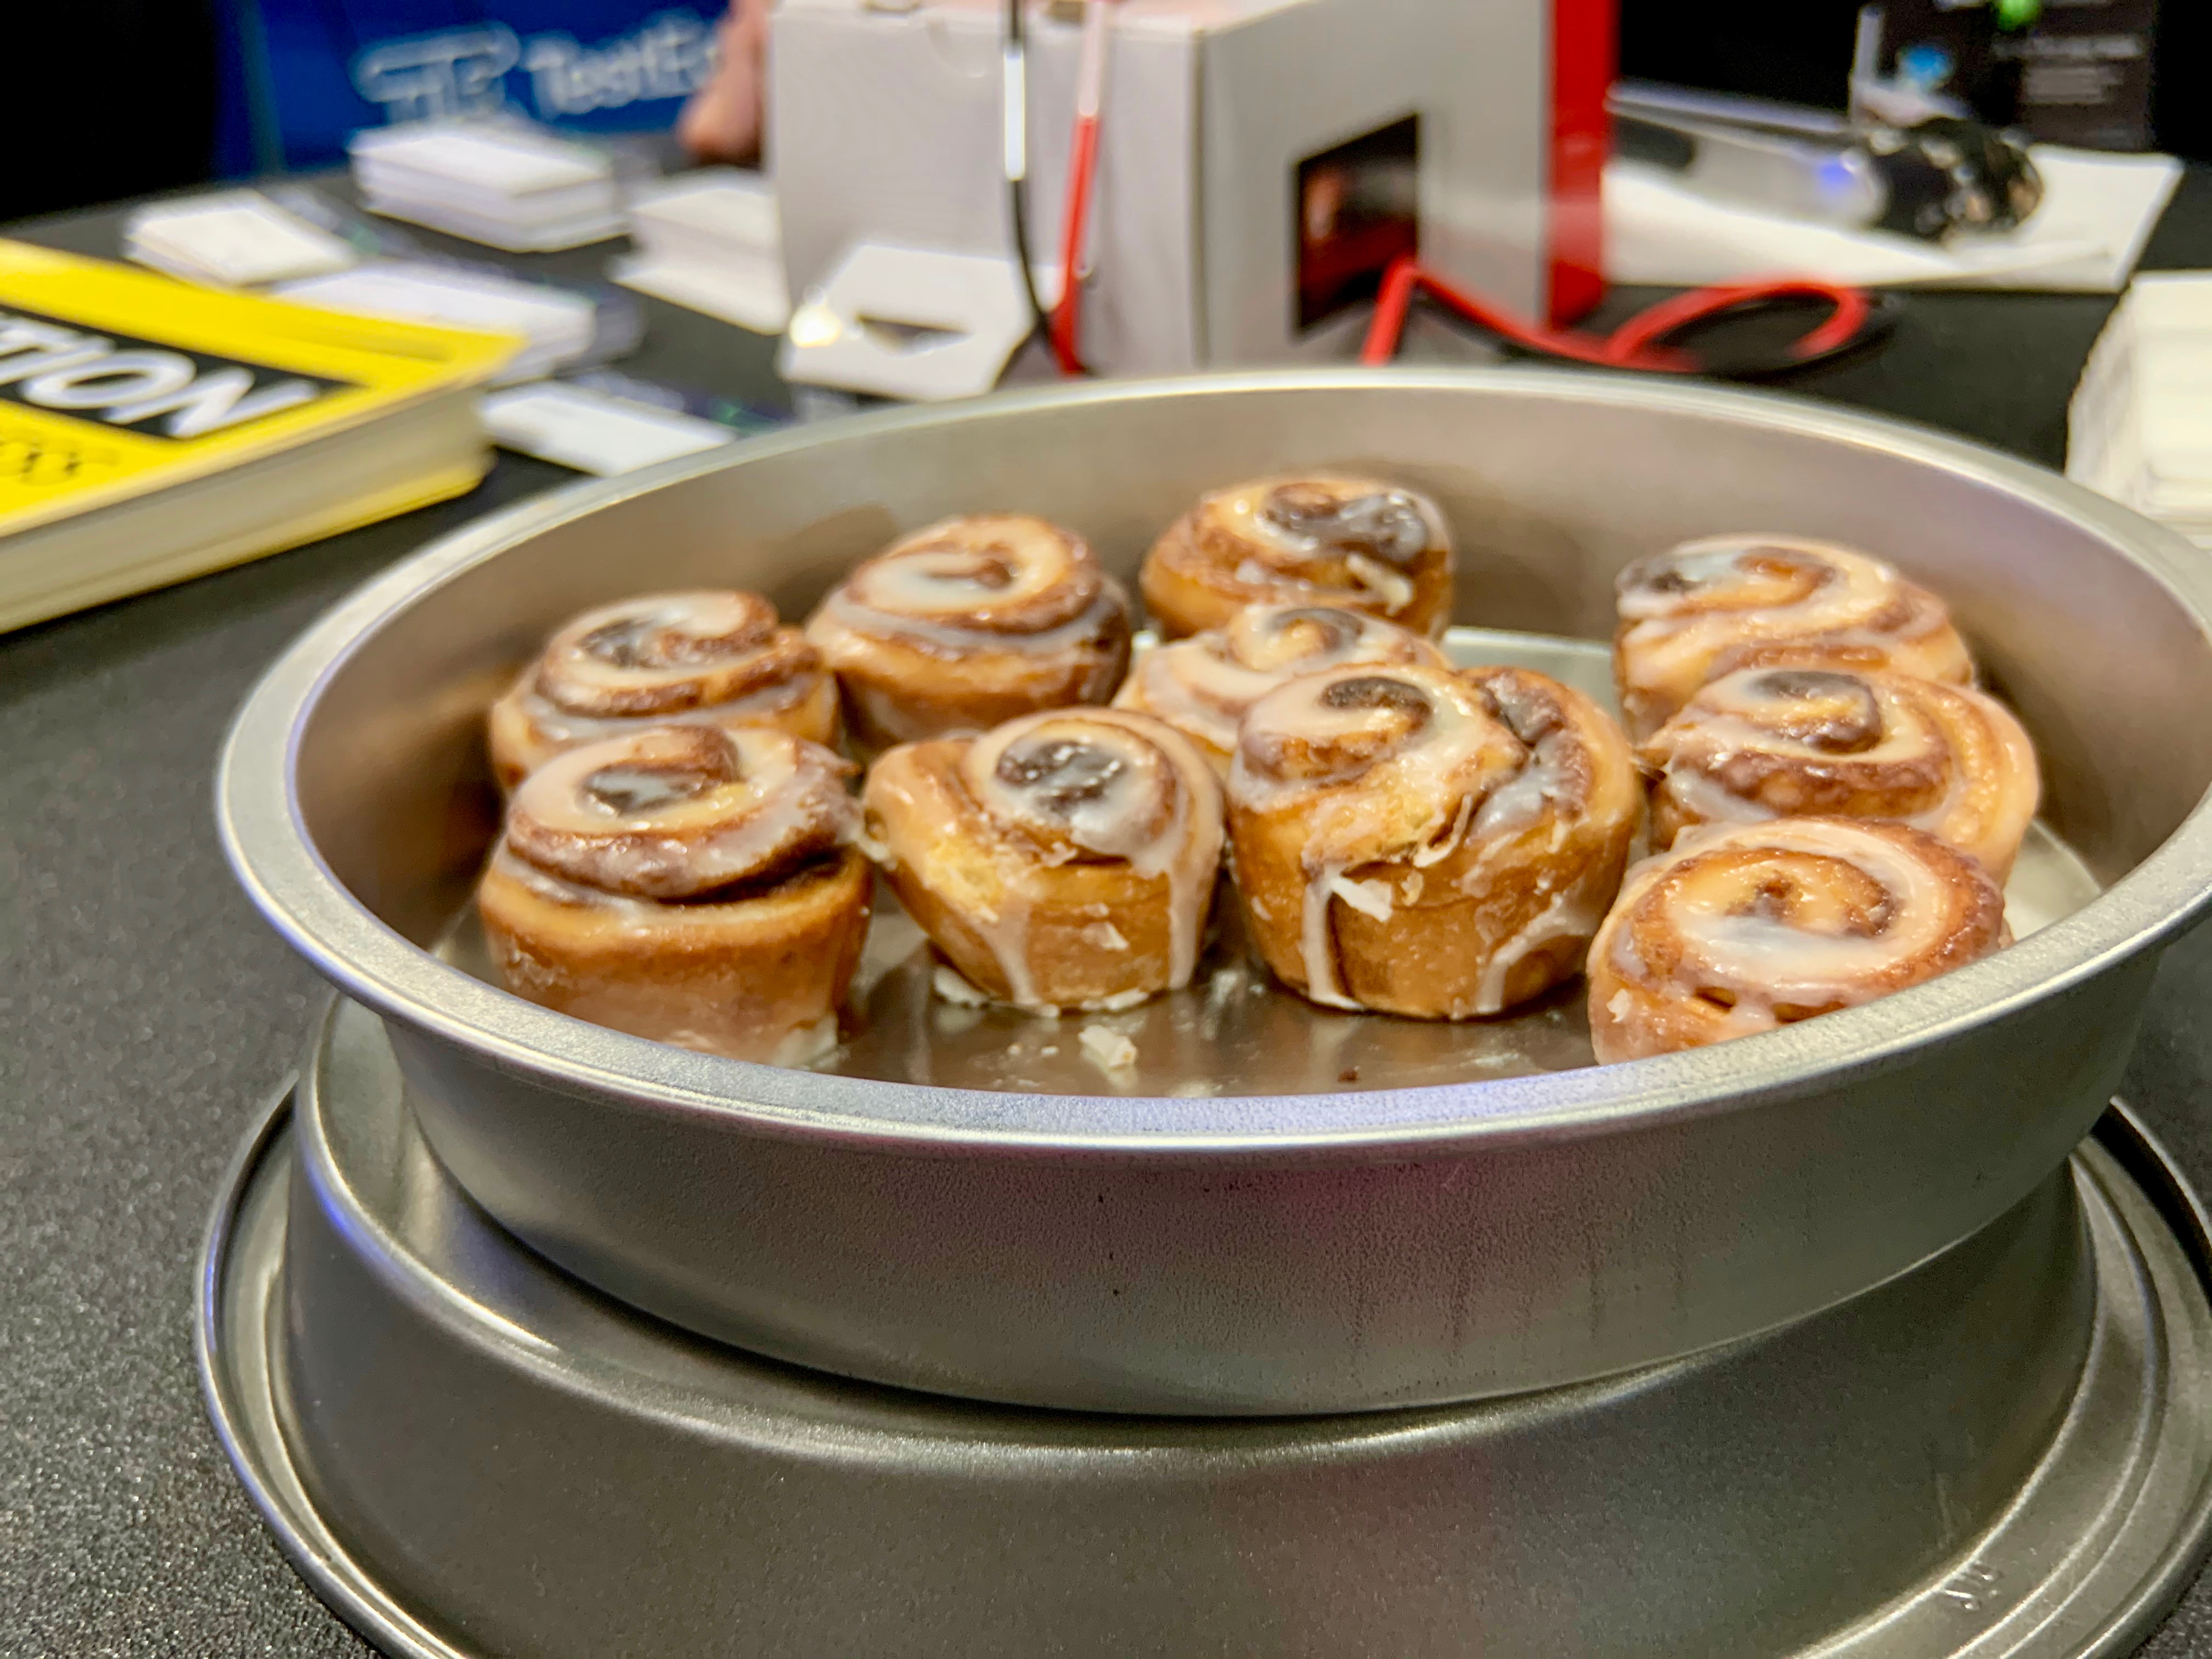 The folks at TestEquity, a satellite tech testing company, provided these delicious cinnamon rolls for show-goers.